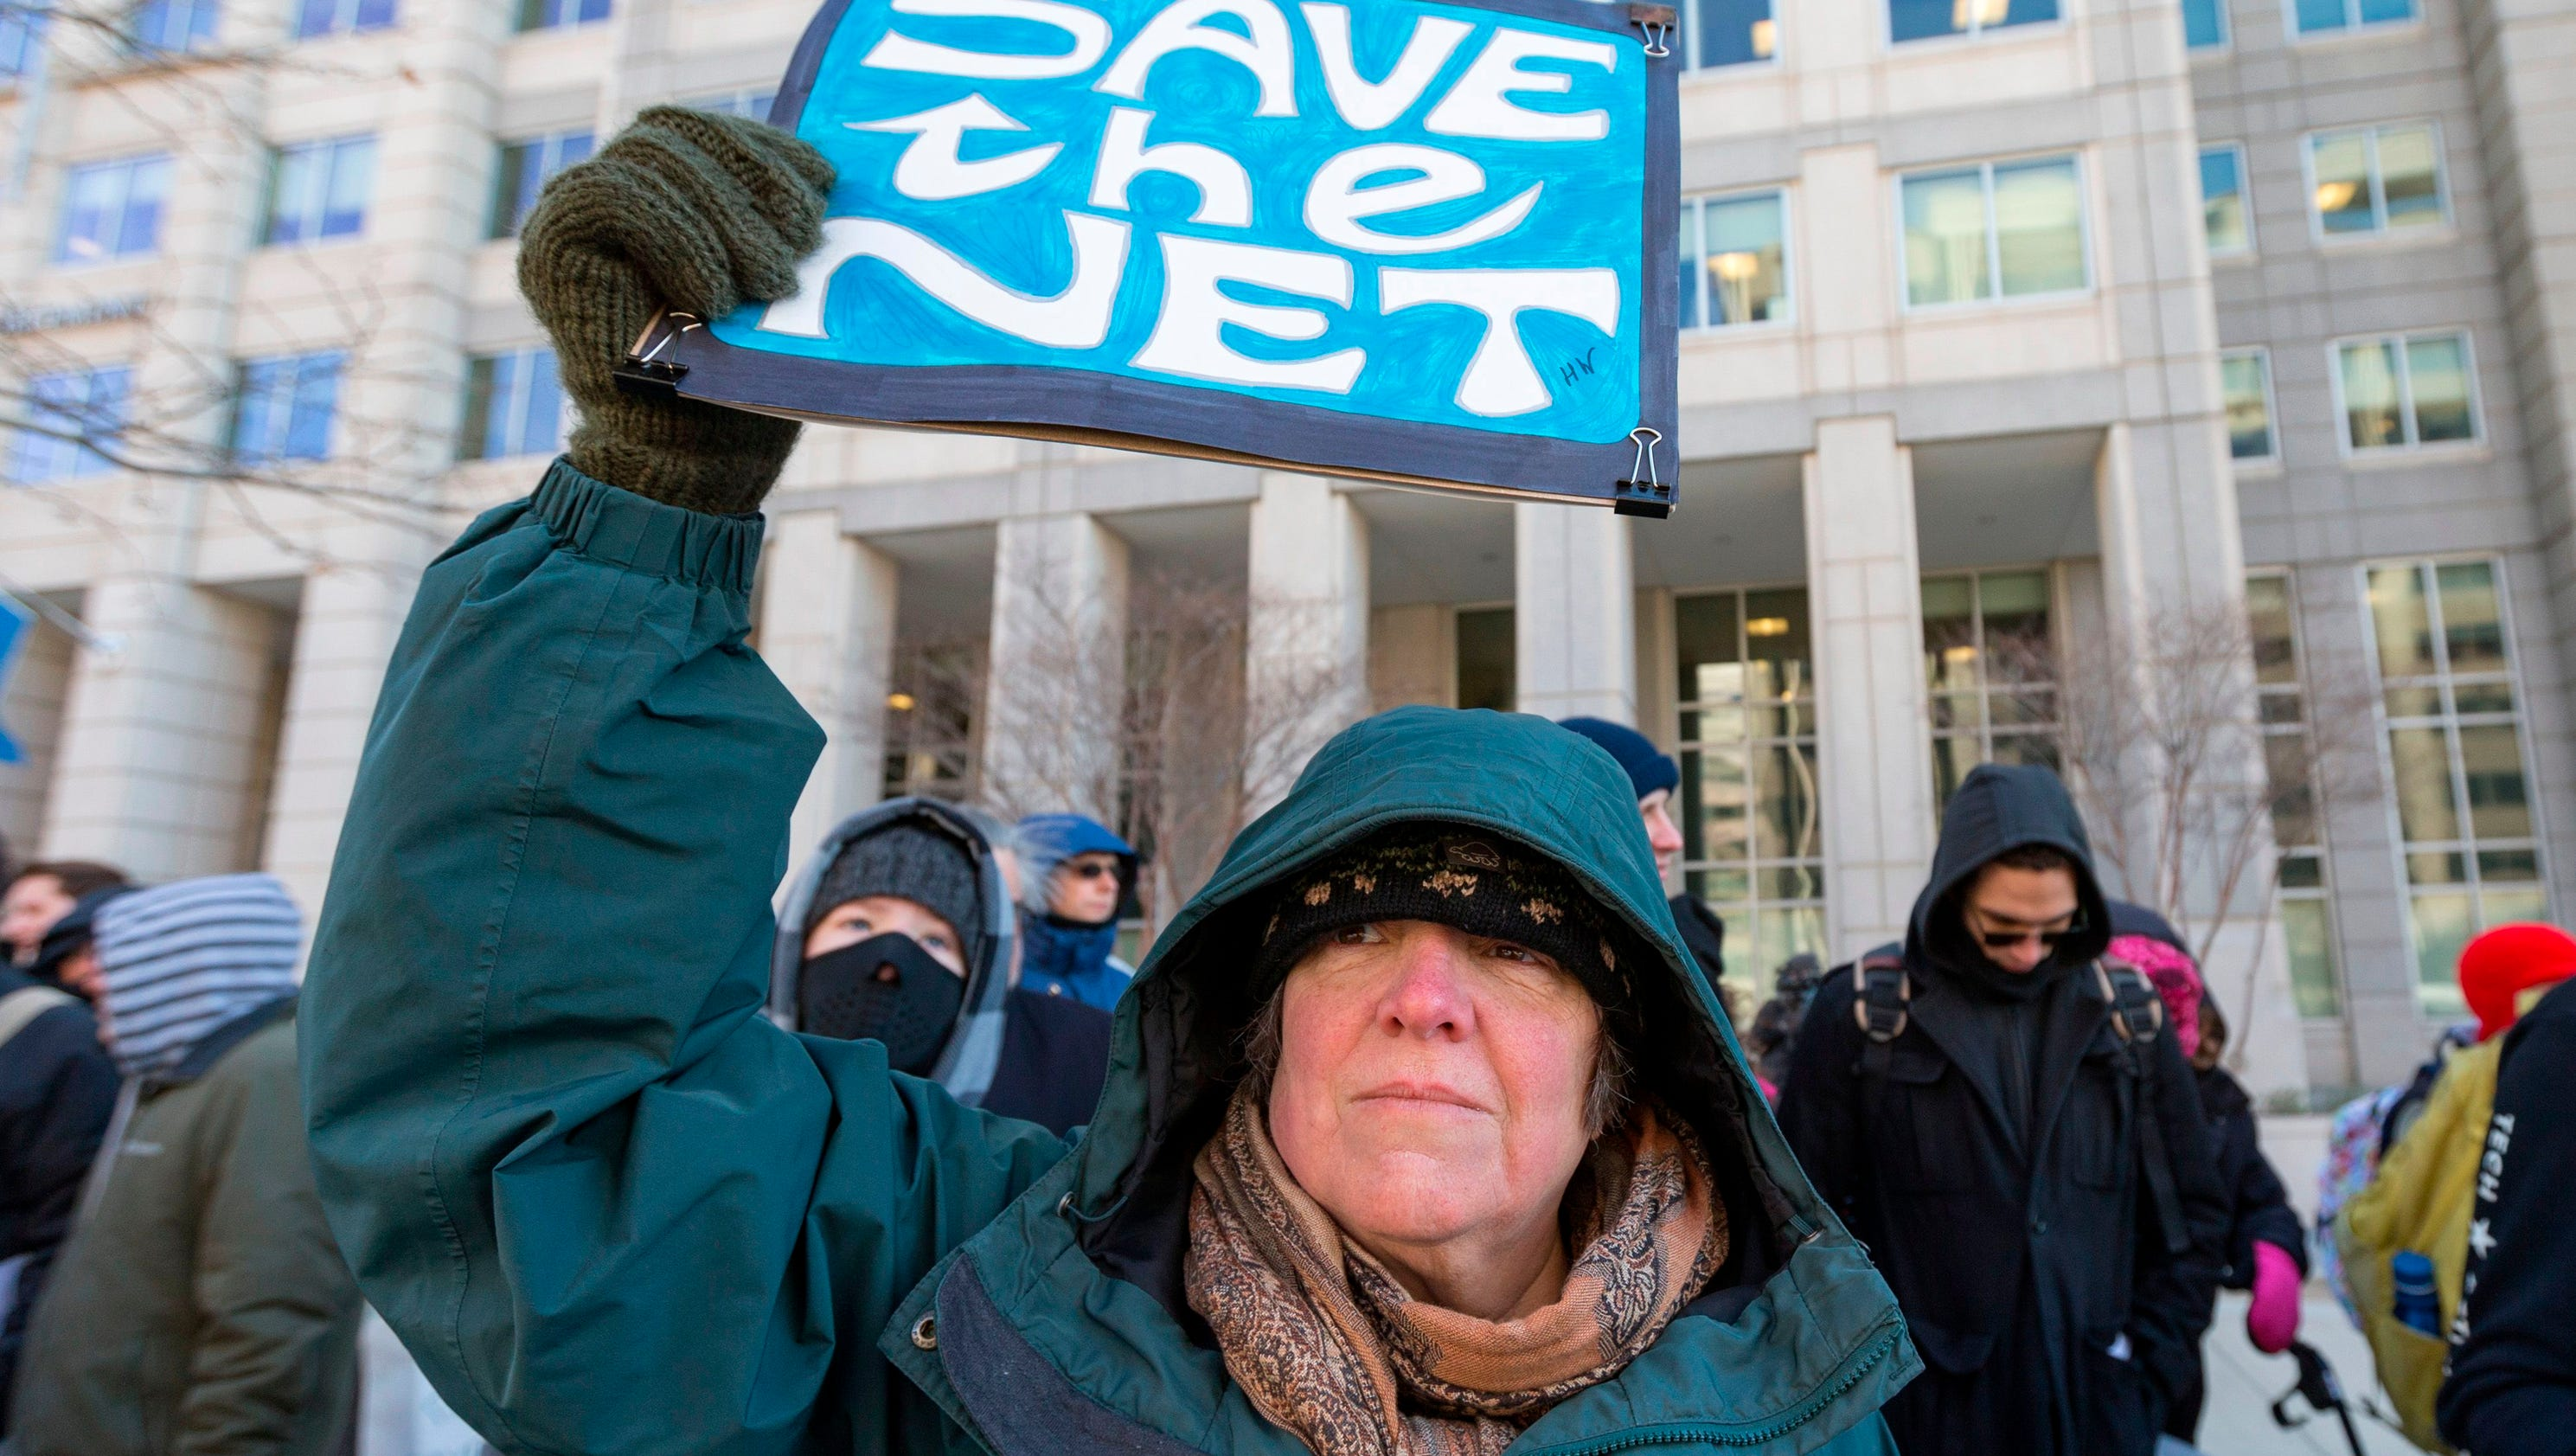 FCC overturns net neutrality rules, but supporters pledge to continue fight